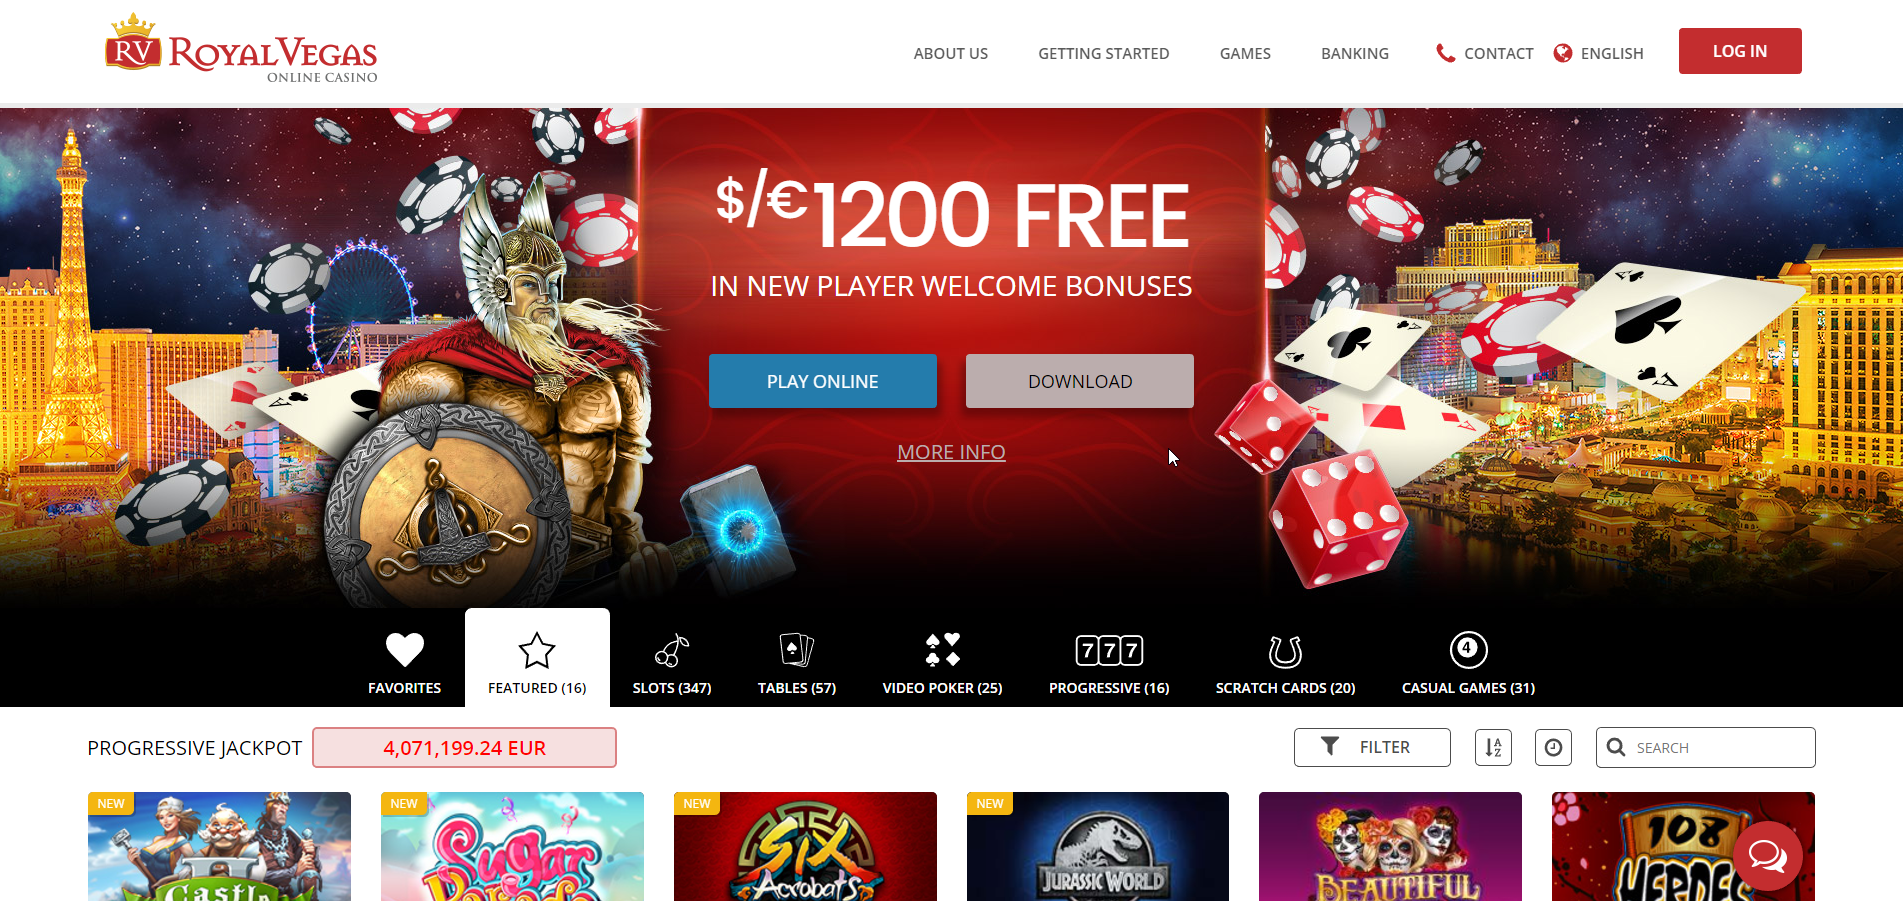 Casino.mx Online Review With Promotions & Bonuses